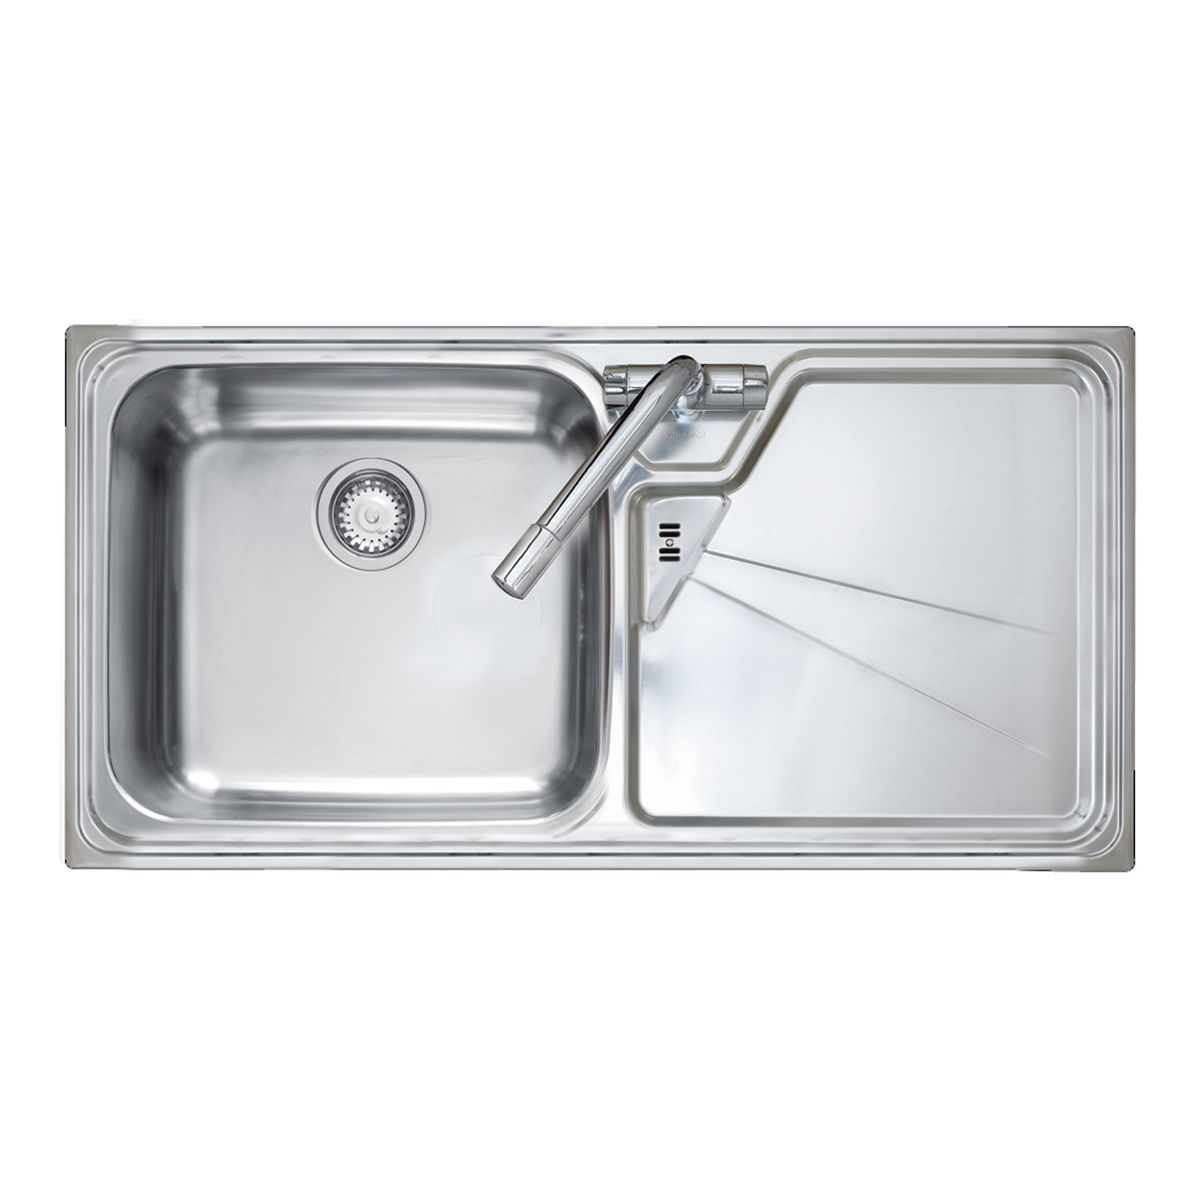 Lausanne 1 0 stainless steel kitchen sink with free - Stainless steel kitchen sink accessories ...